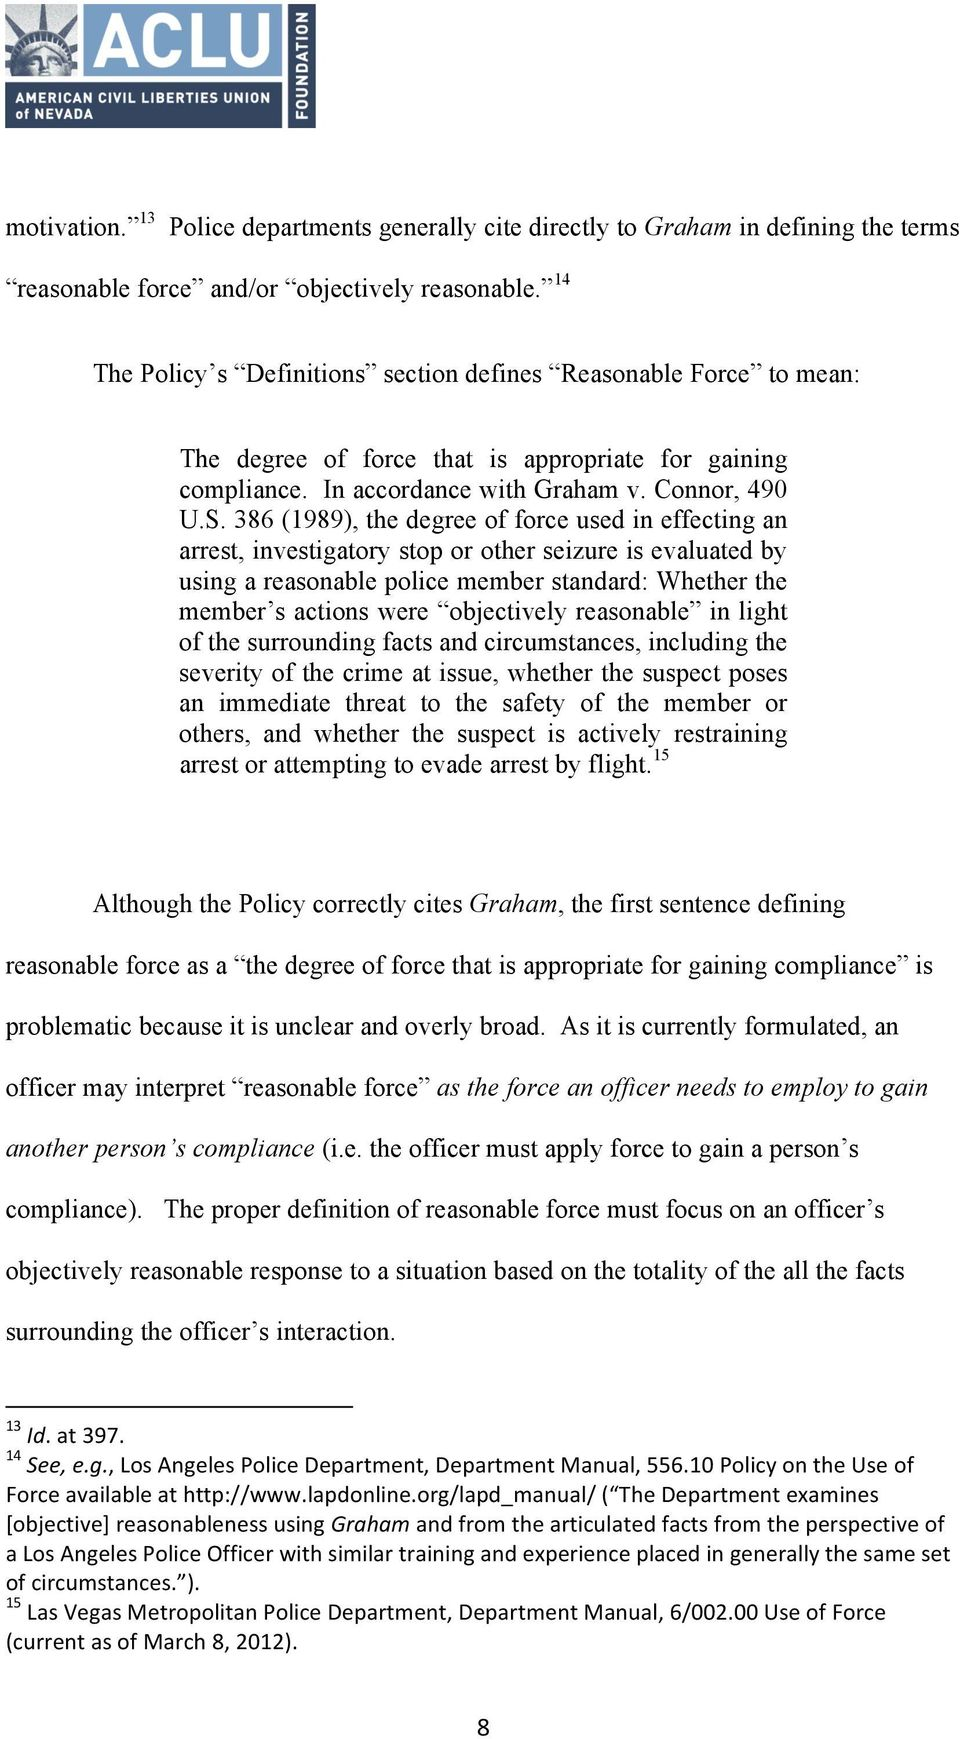 386 (1989), the degree of force used in effecting an arrest, investigatory stop or other seizure is evaluated by using a reasonable police member standard: Whether the member s actions were